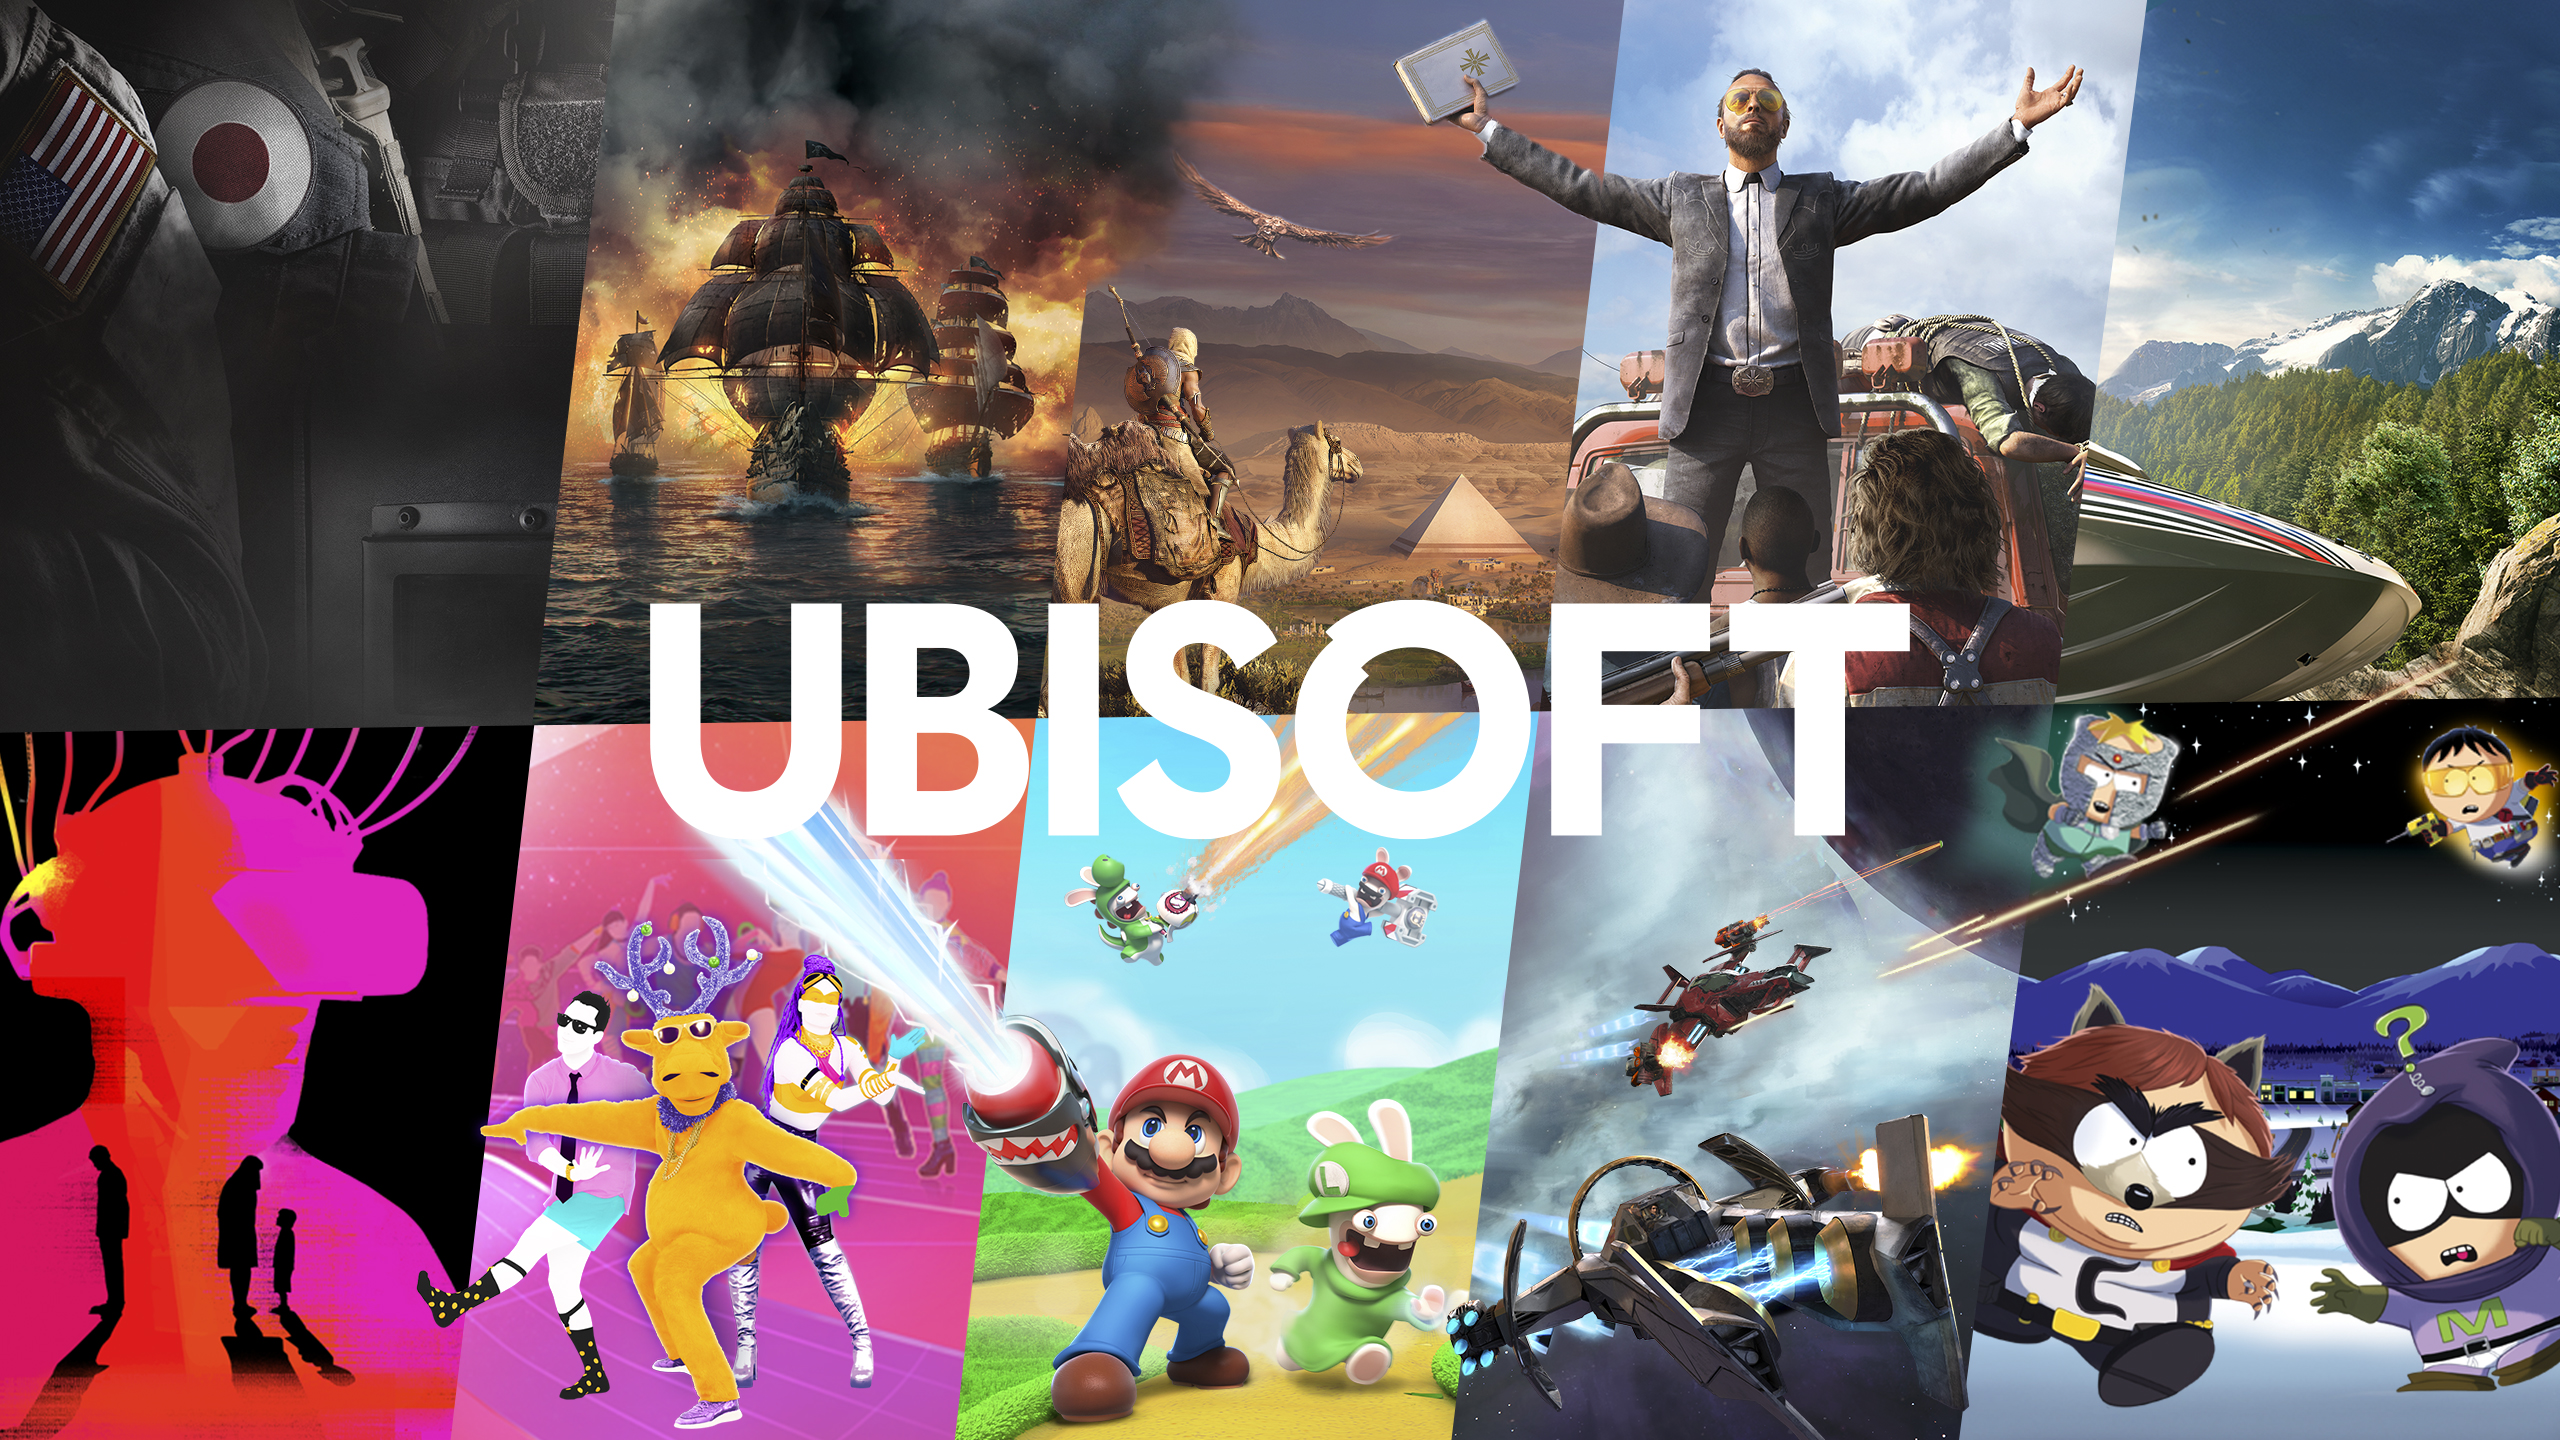 Ubisoft Video Game Company